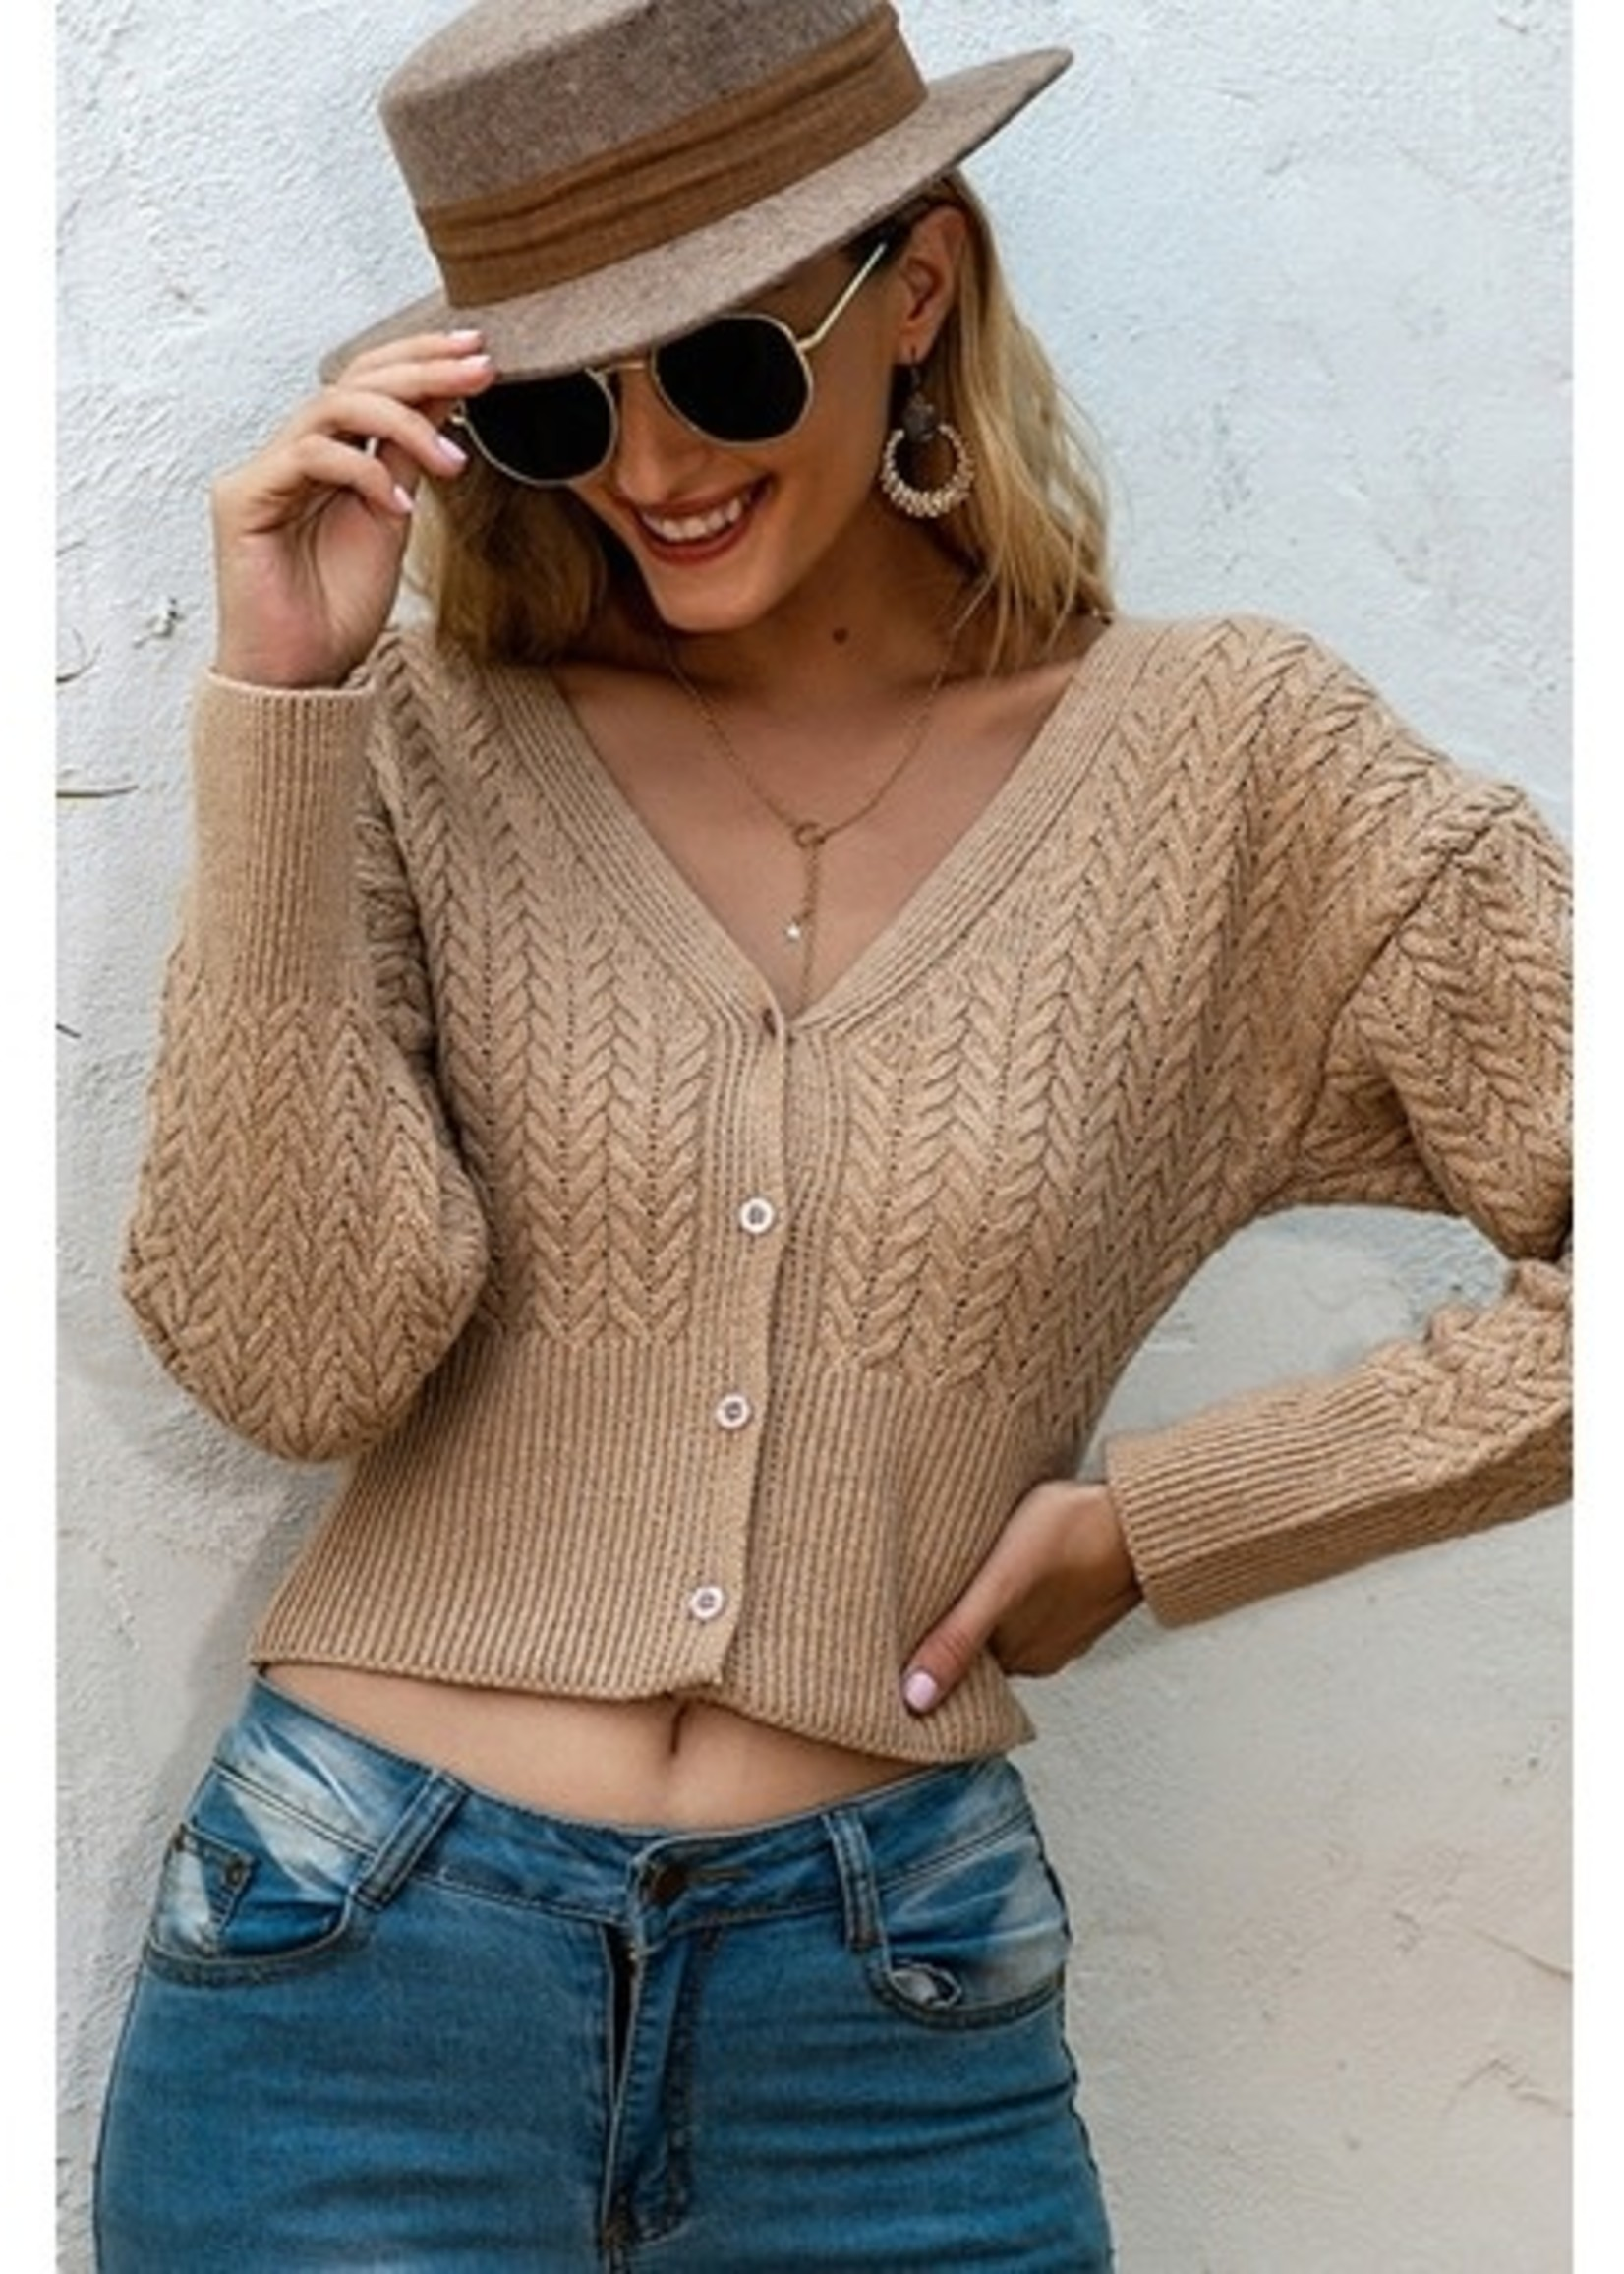 Esley Cropped Cardigan Sweater - Wheat